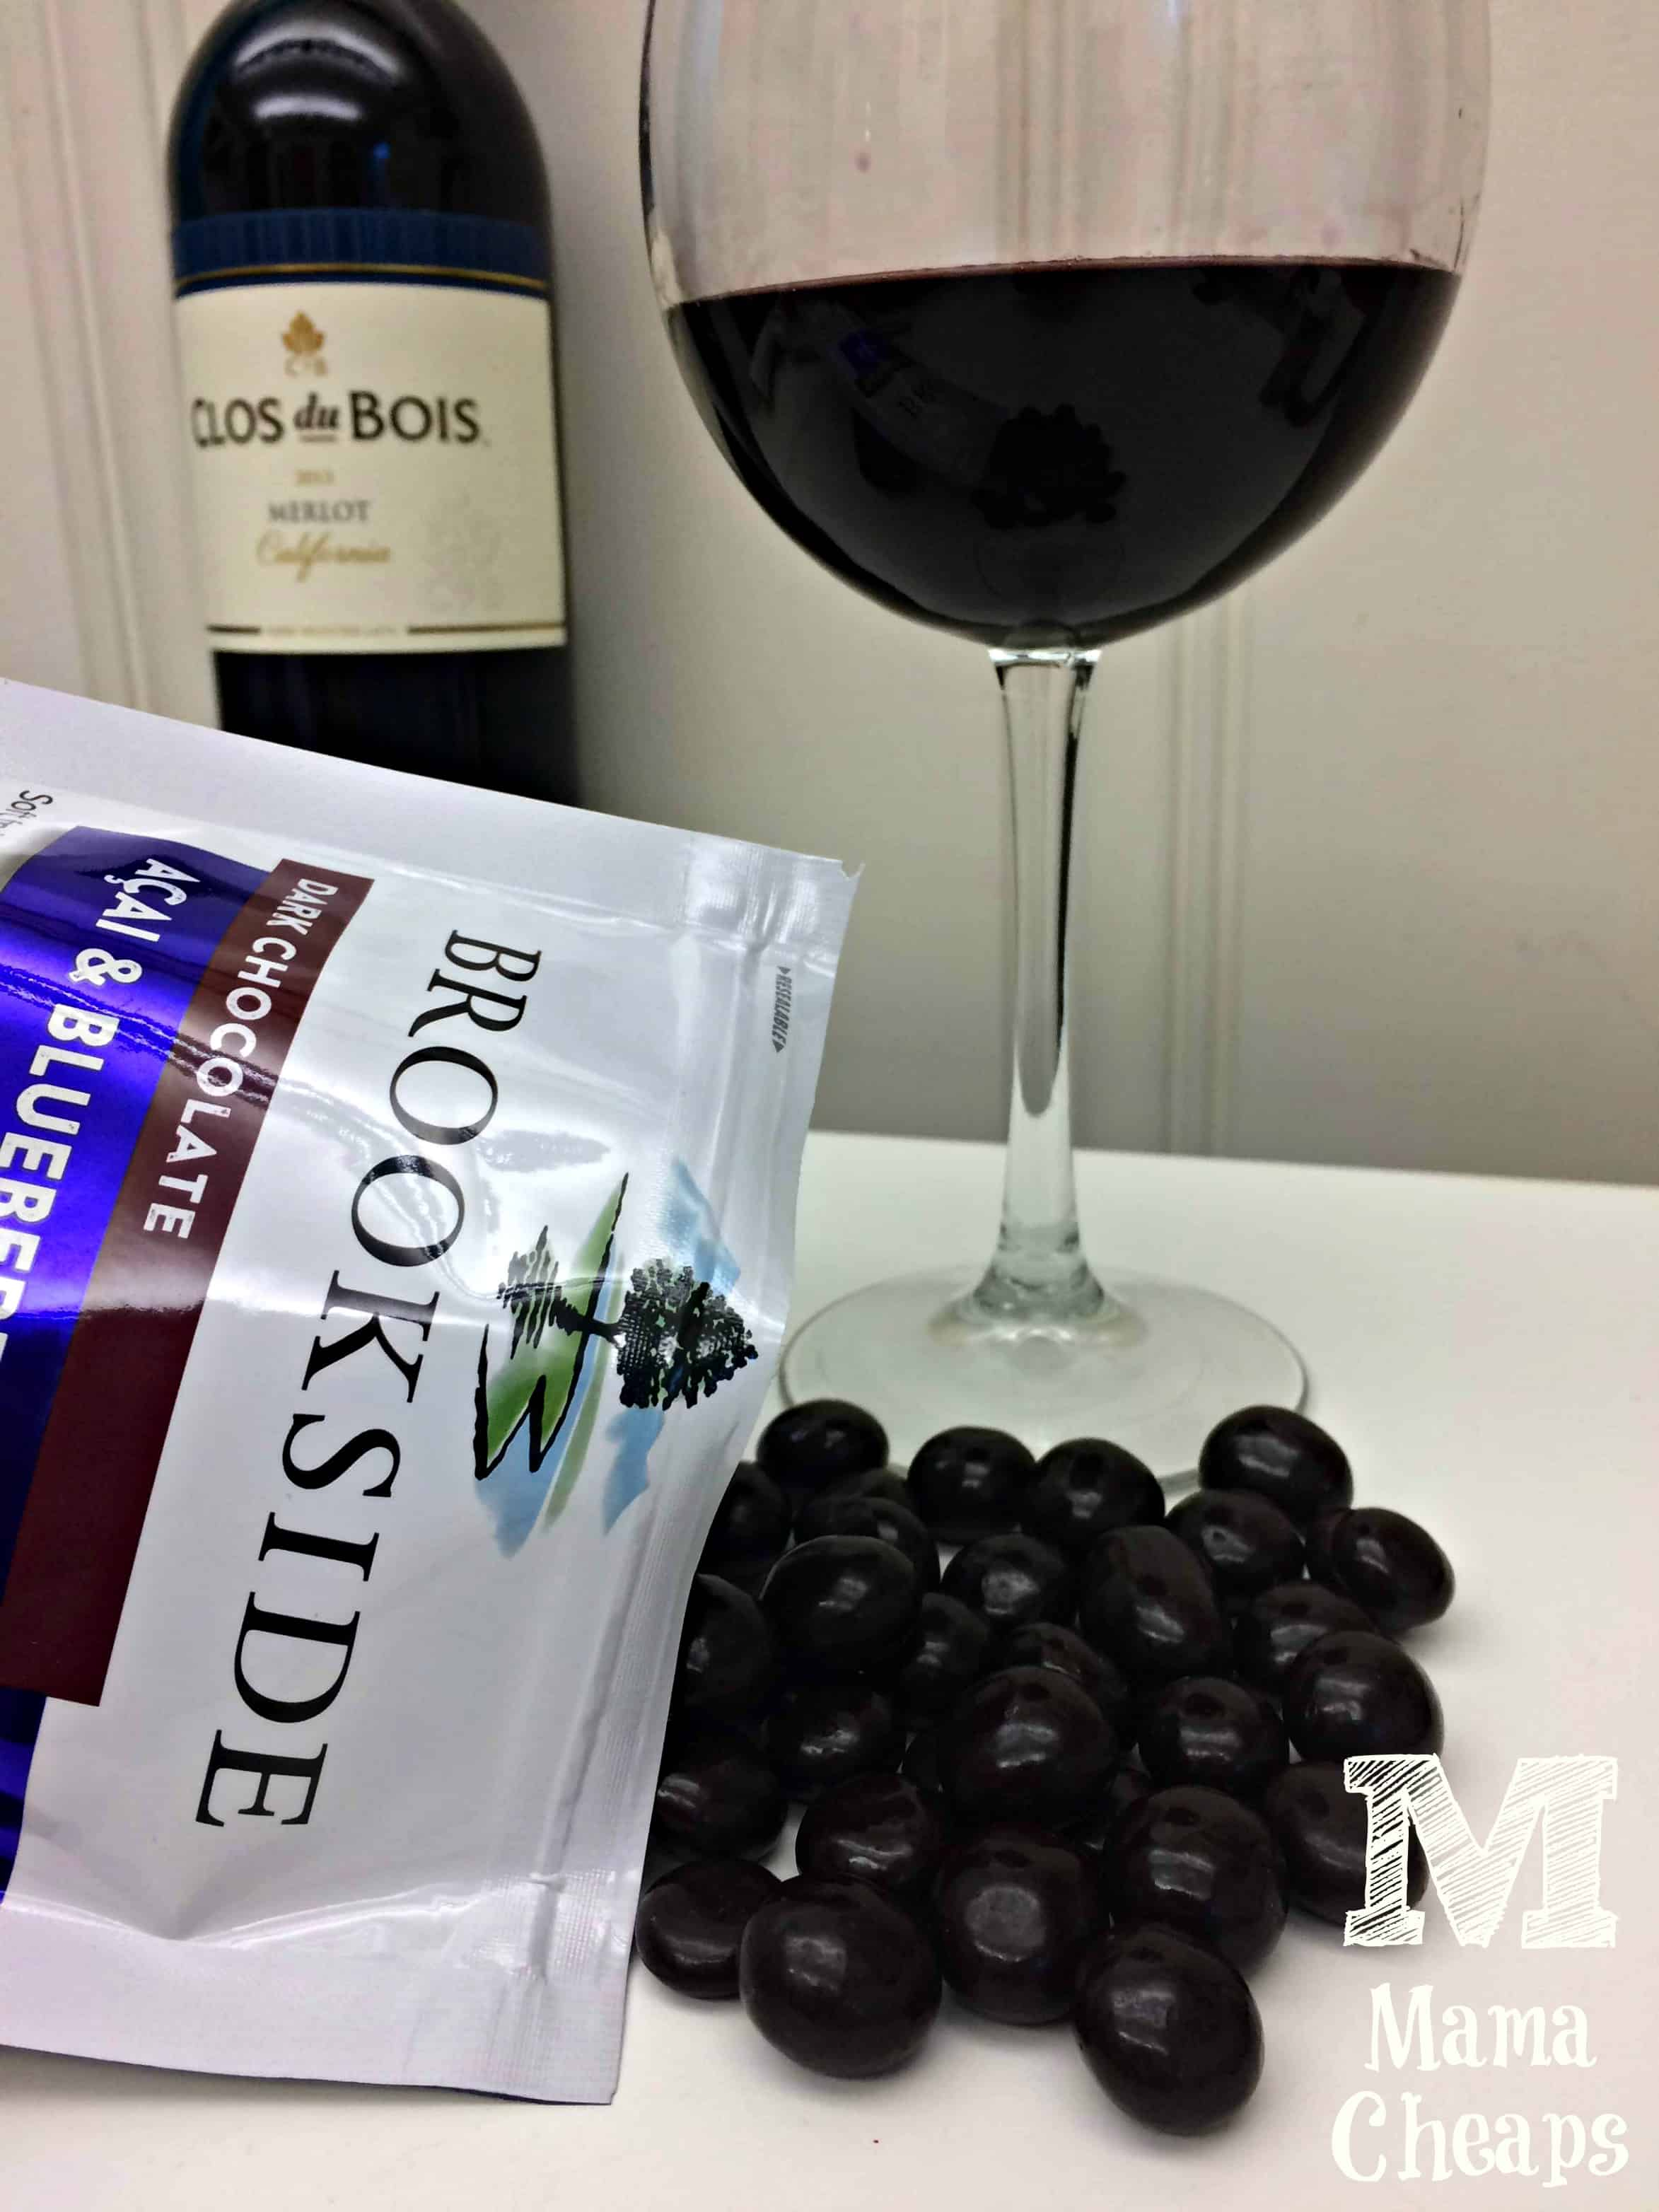 AD A Perfect Pair: BROOKSIDE Chocolate and Clos du Bois Wines ...